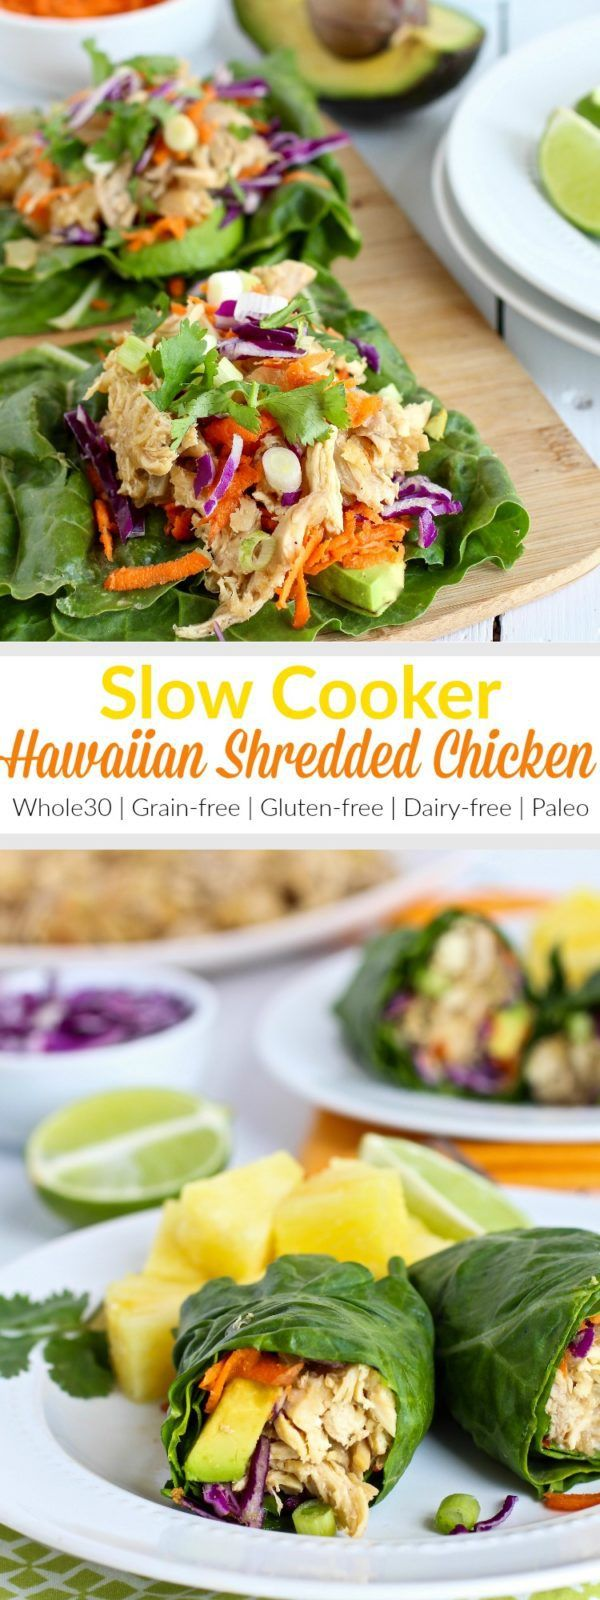 Slow Cooker Hawaiian Shredded Chicken is the perfect blend of sweet and savory. It's a Whole30 compliant recipe that's great for leftovers and can be served warm or cold. | Grain-free | Gluten-free | Dairy-free | Paleo | https://therealfoodrds.com/slow-cooker-hawaiian-shredded-chicken/